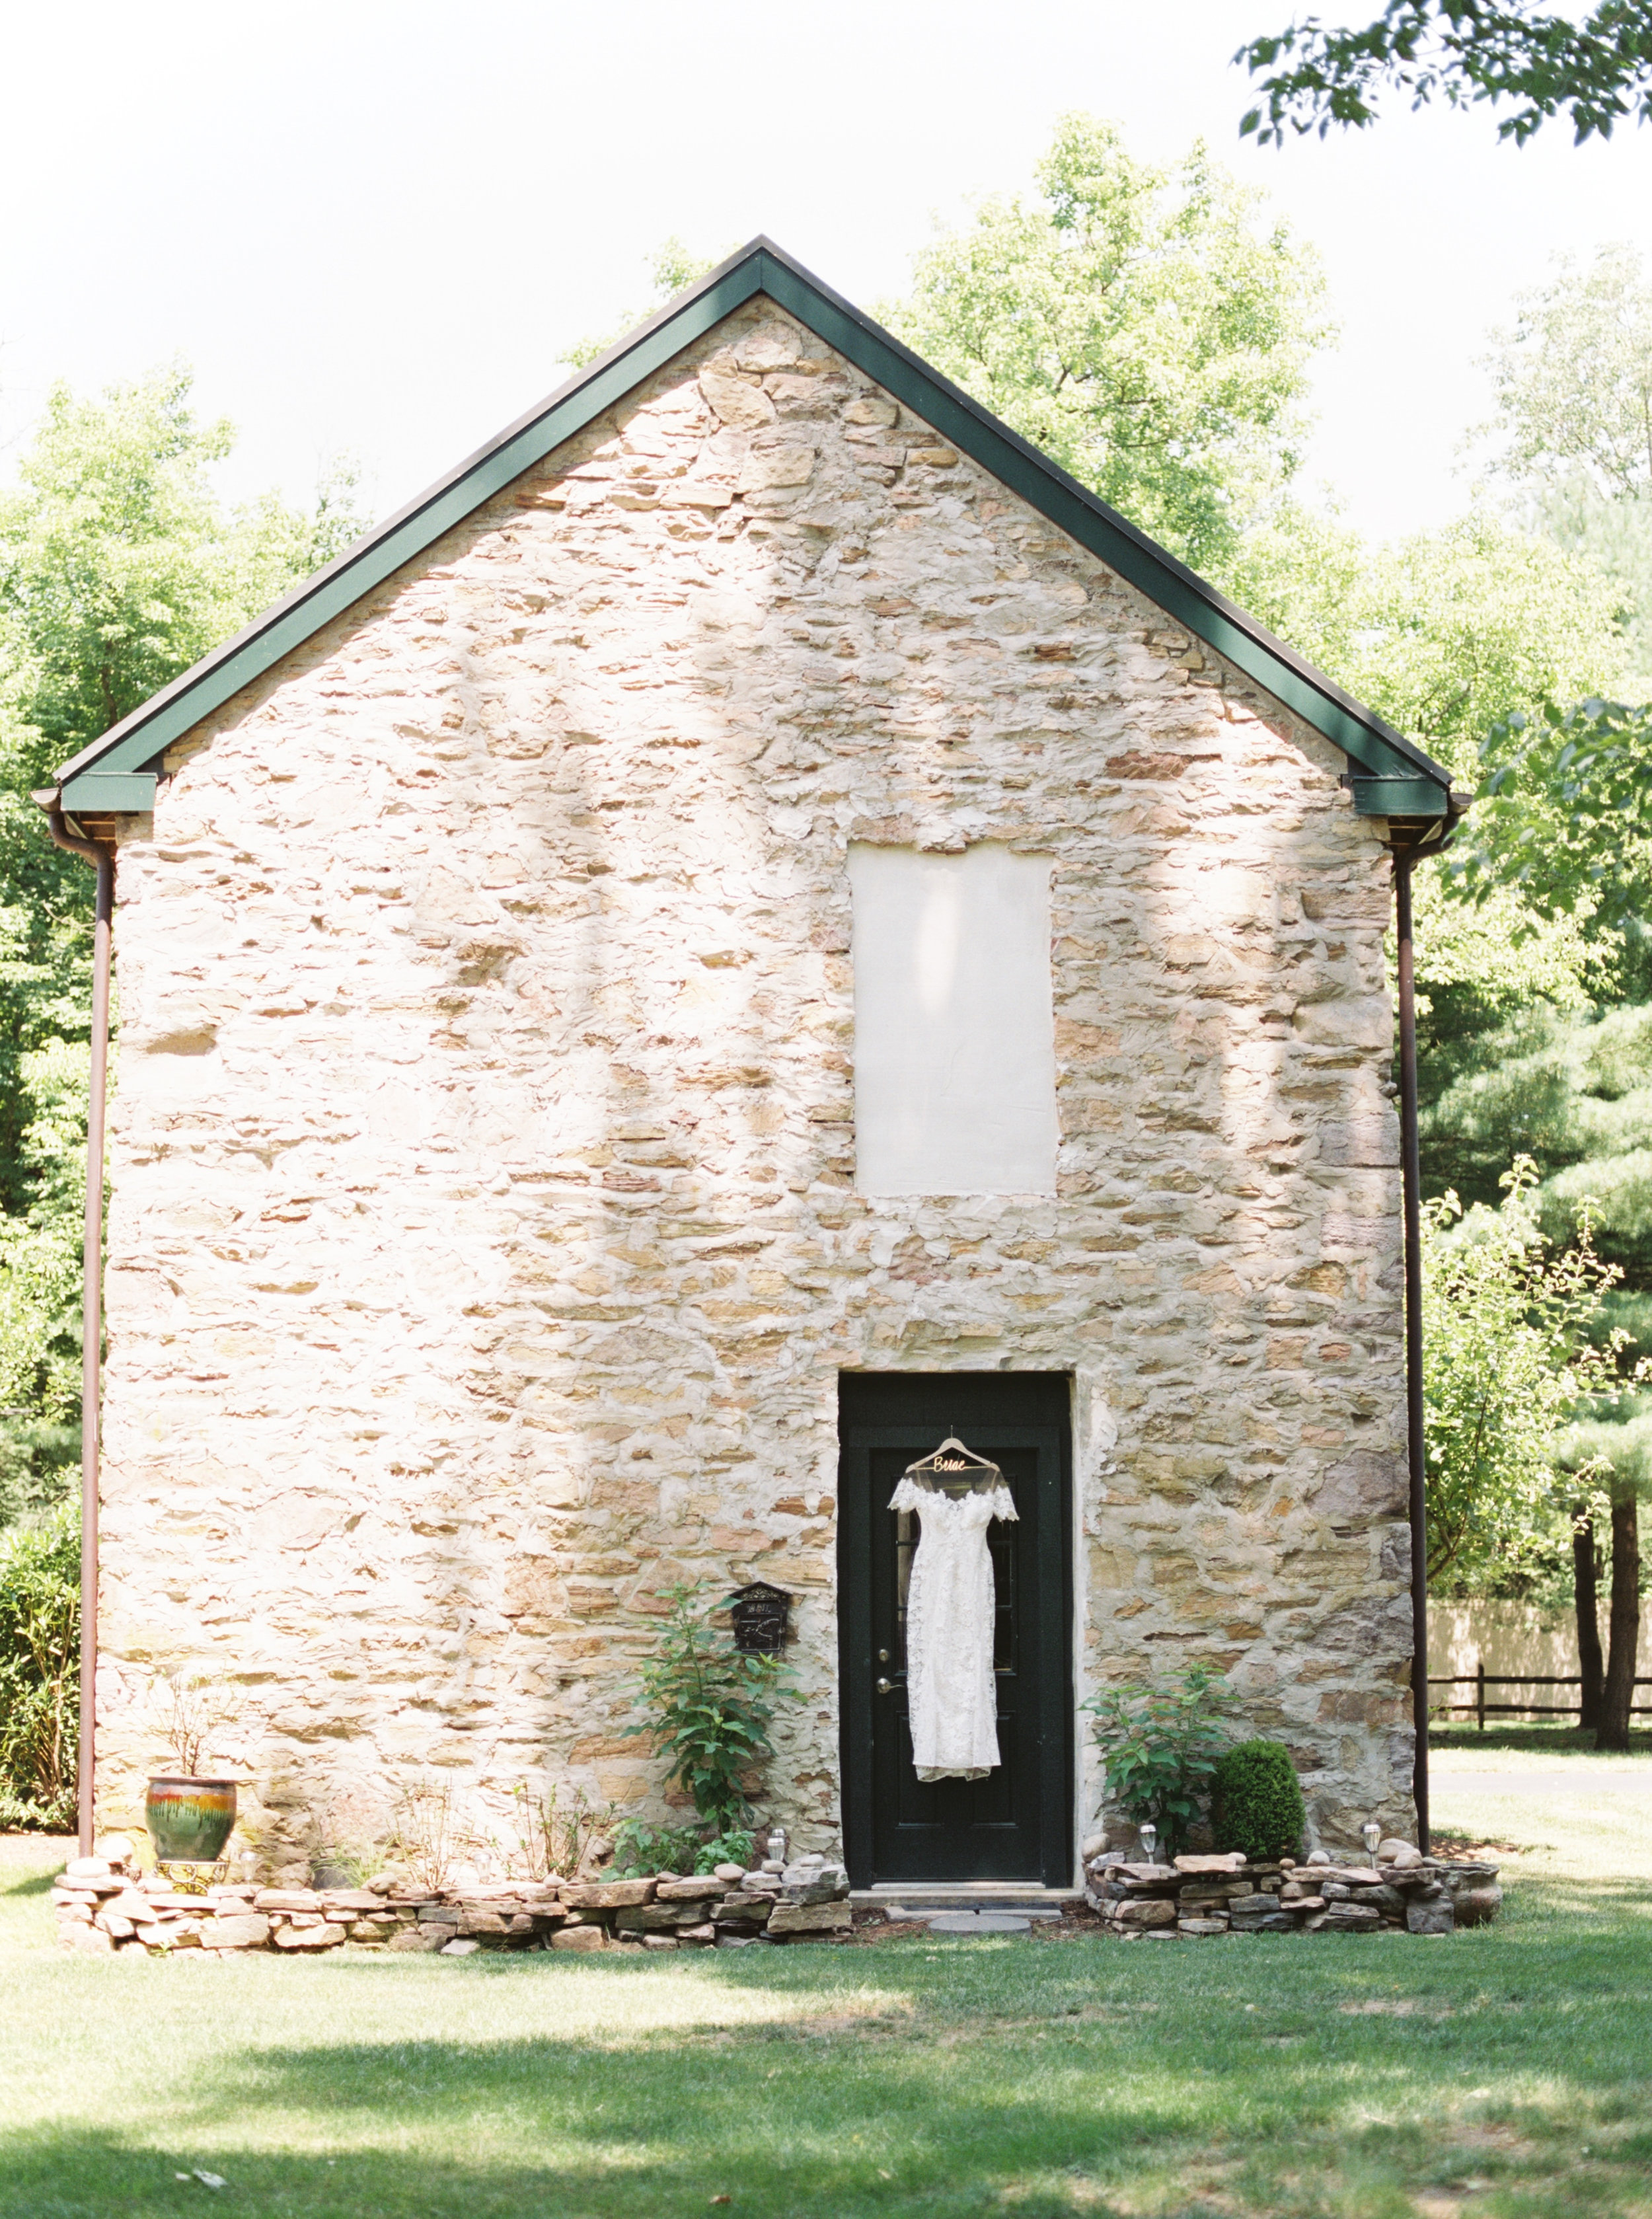 Pastoral vibes from this modern lace Lover's Society wedding dress hanging on this old stone building. A summer dream.